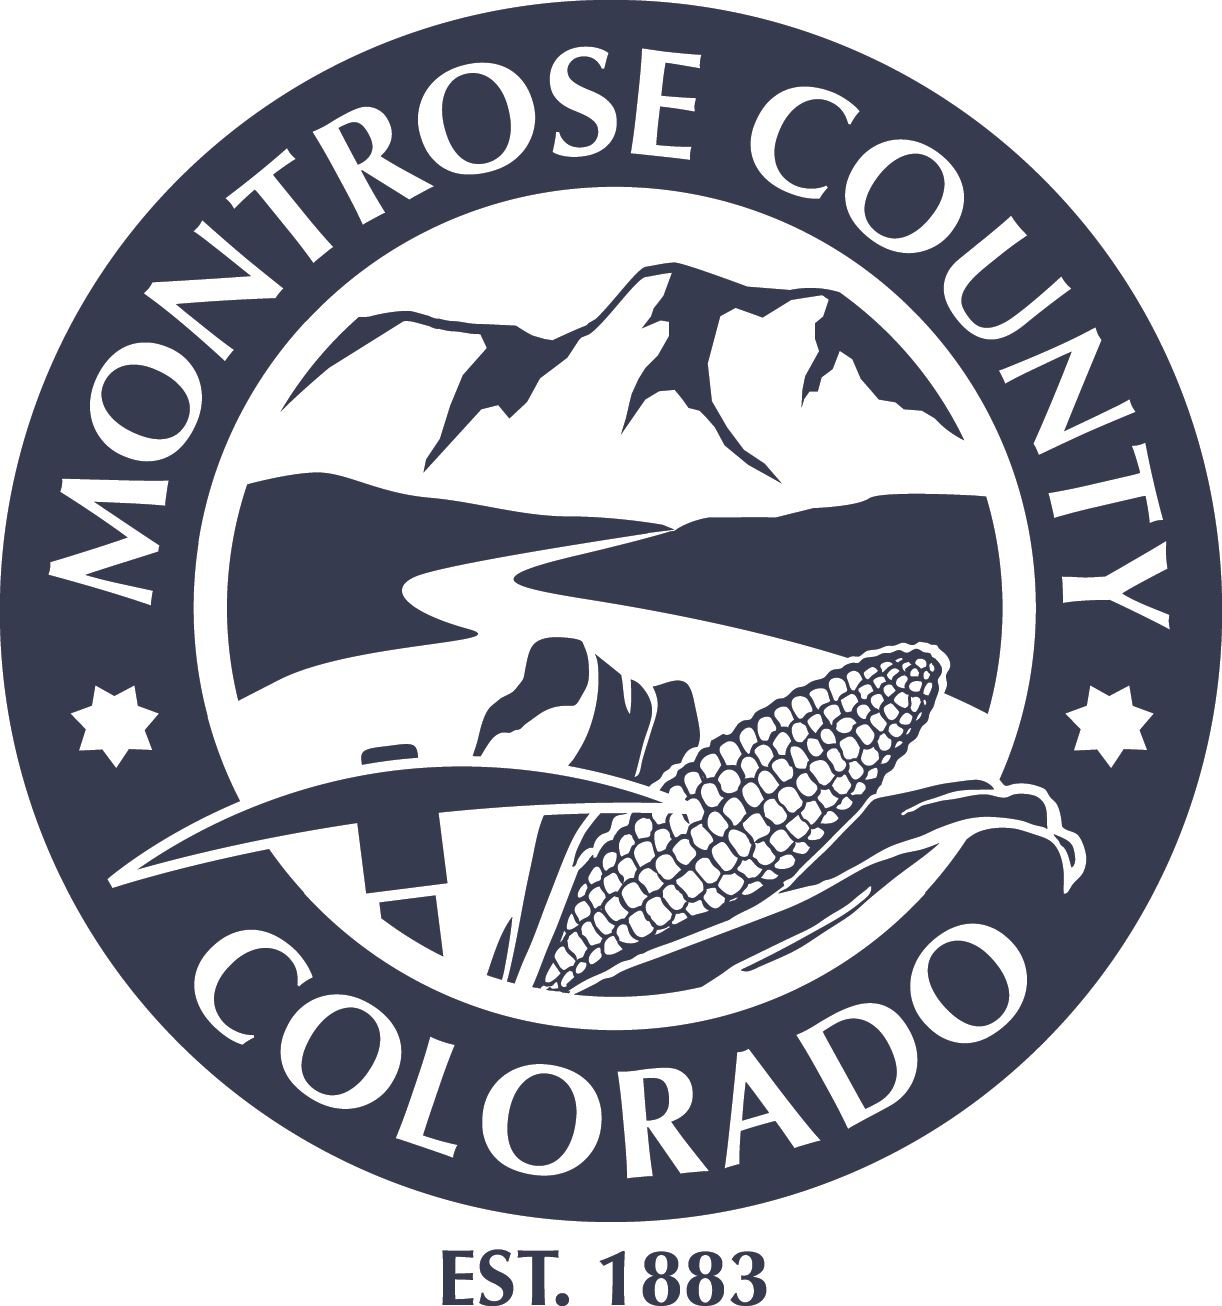 MontroseCounty-Logo-Seala